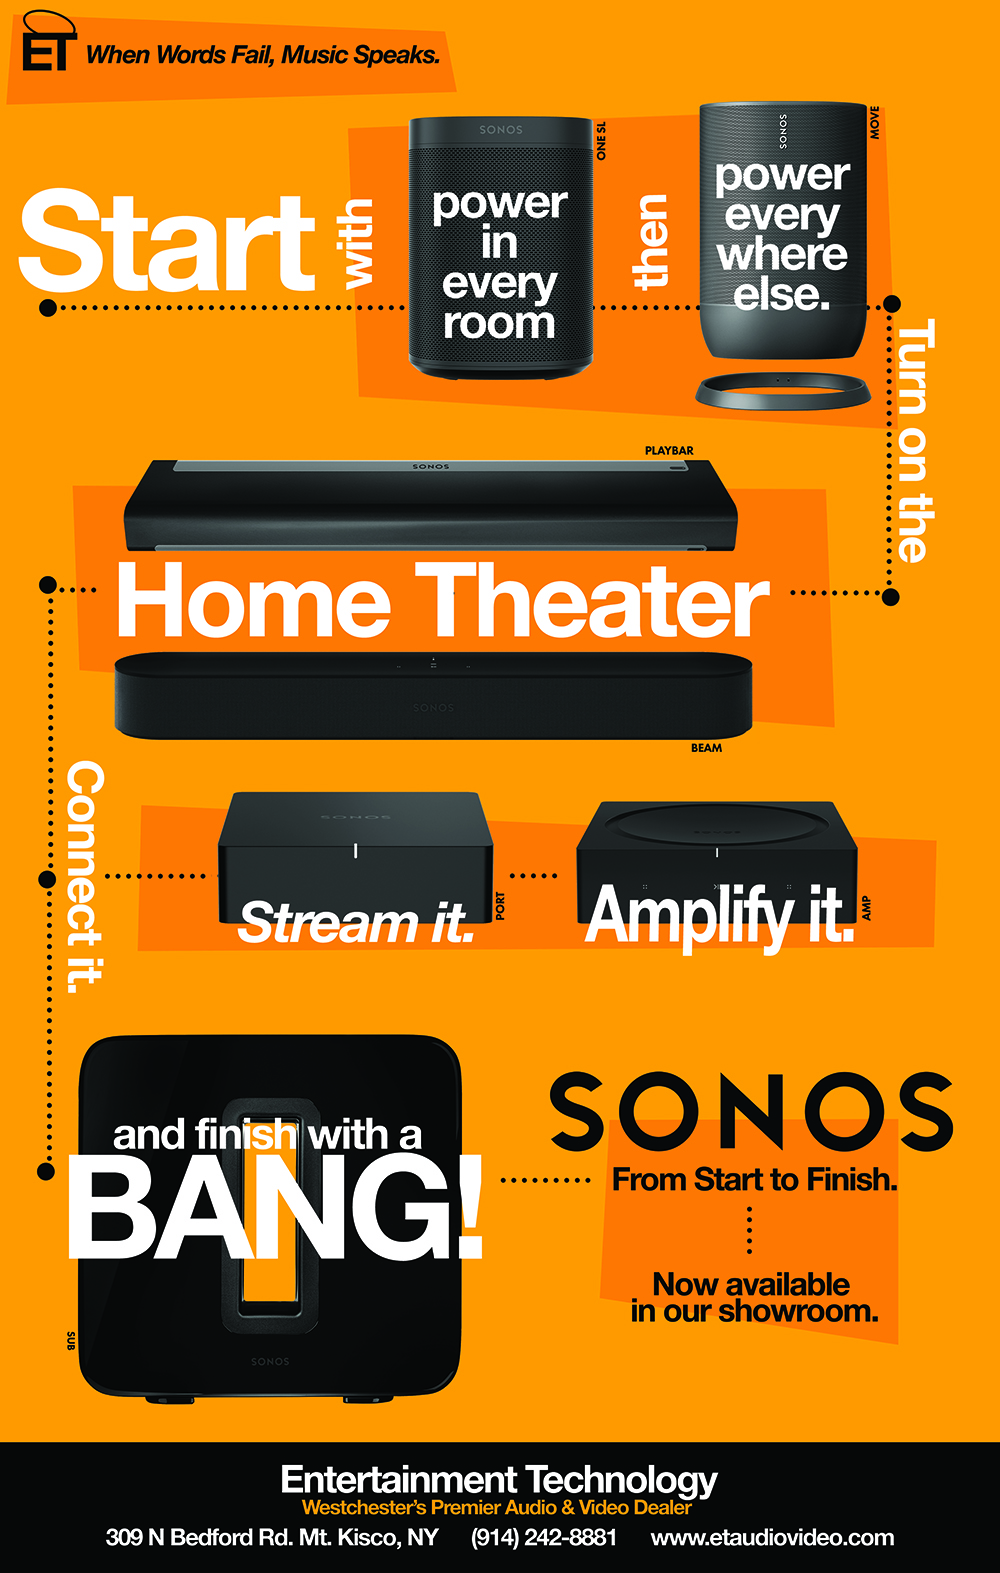 EntertainmentTech-Newspaper-Sonos02-1000